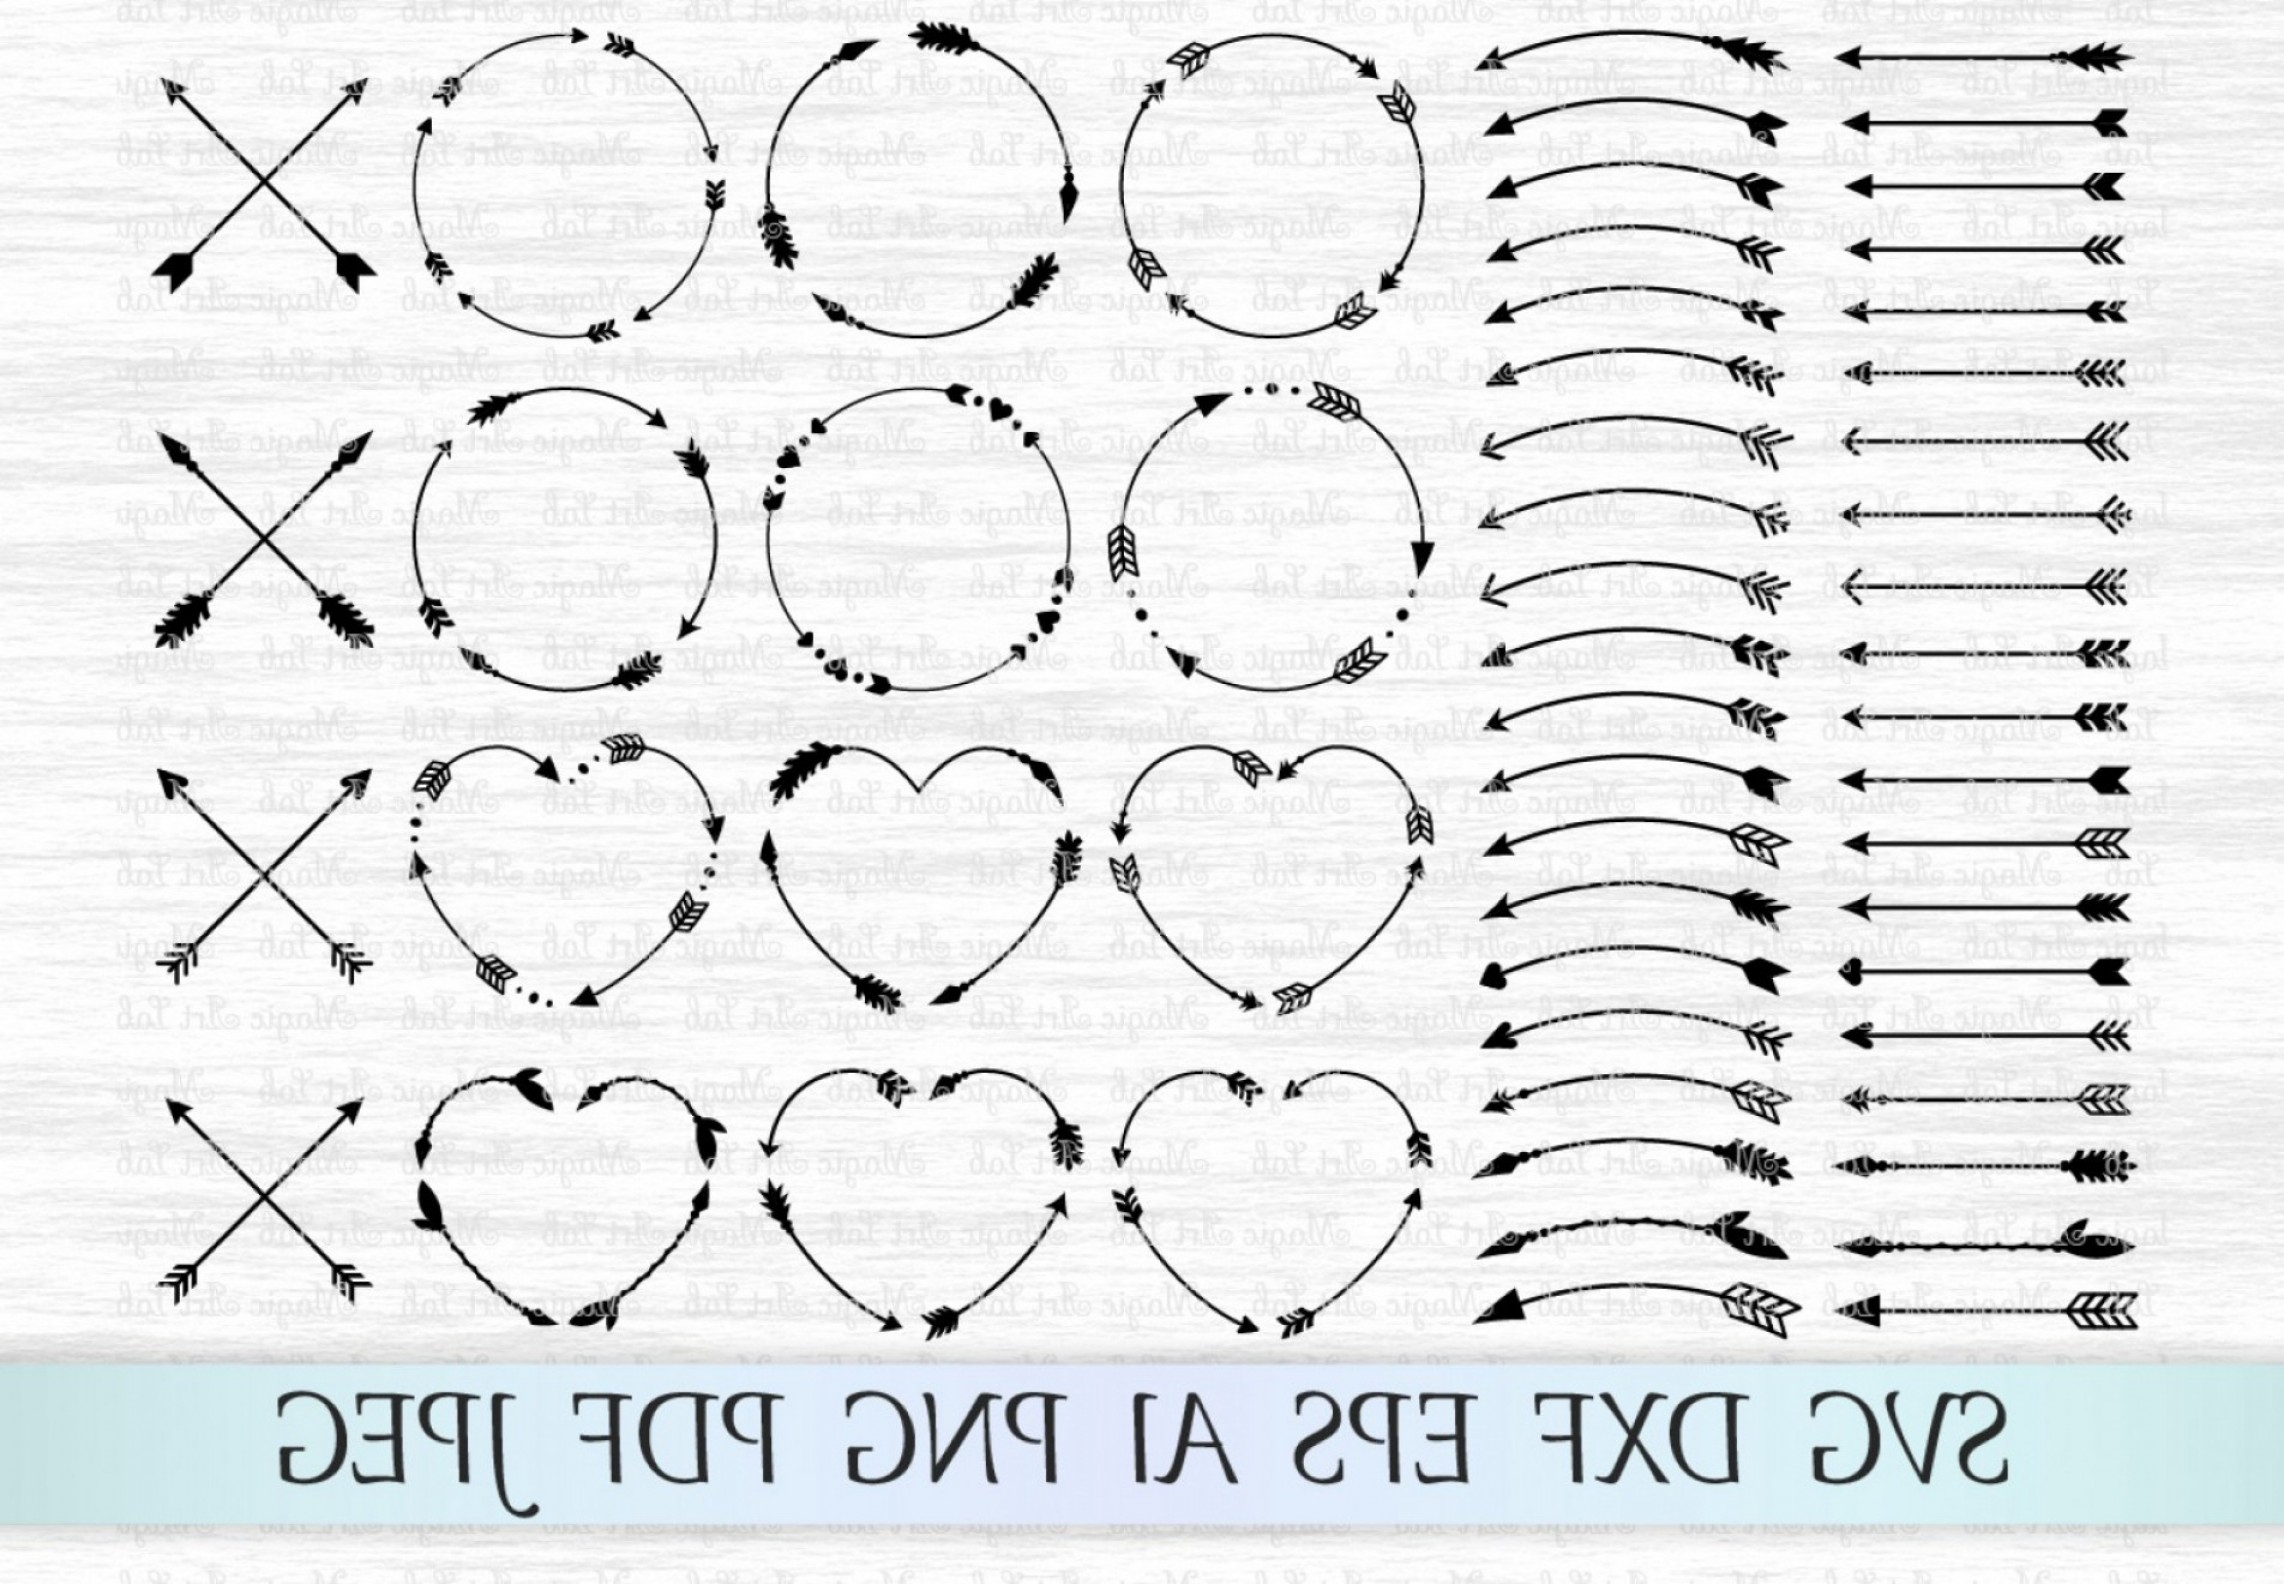 Single Tribal Arrow Vector SVG: Arrows Svg Circle Monogram Svg Circle Frame Arrow Heart Frame Criss Cross Arrows Tribal Arrows Svg Boho Arrows Clipart Ethnic Aztec